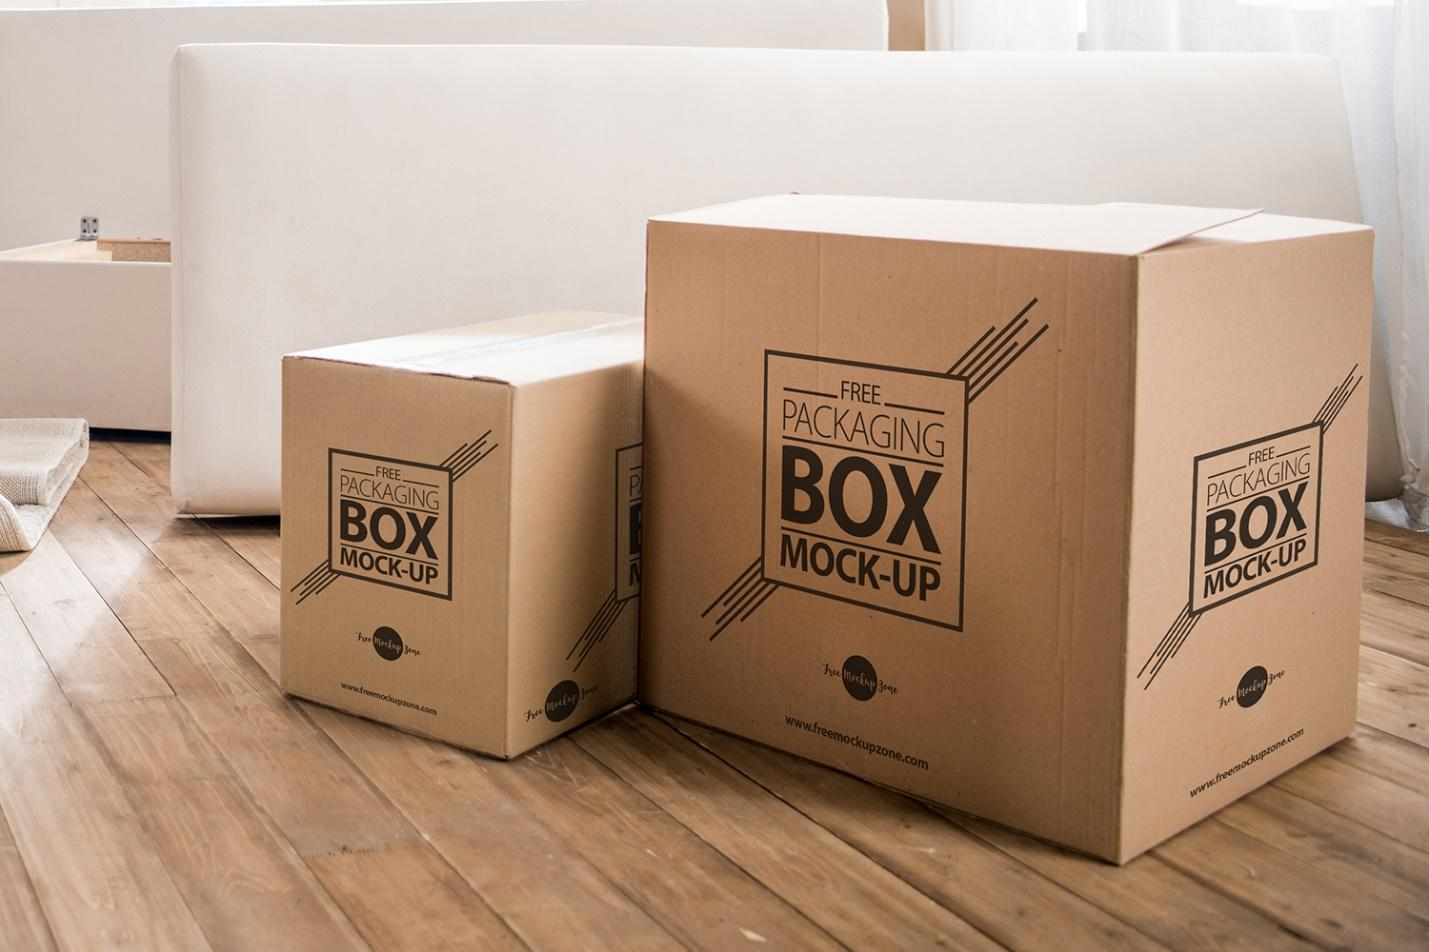 What are New Things About Packing Boxes?